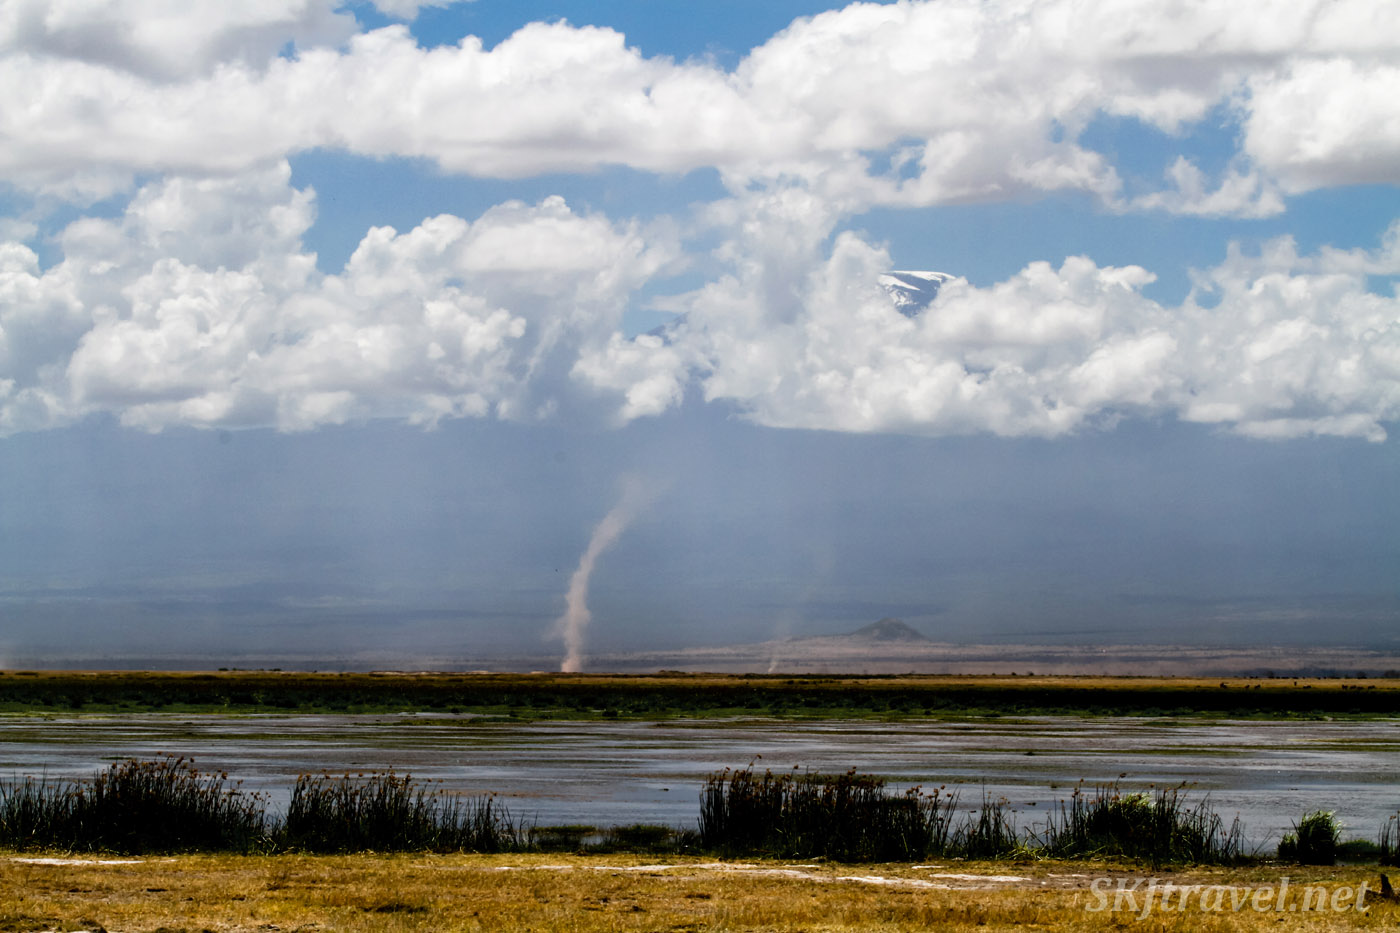 Dust devil on the plains of Amboseli National Park, Kenya.